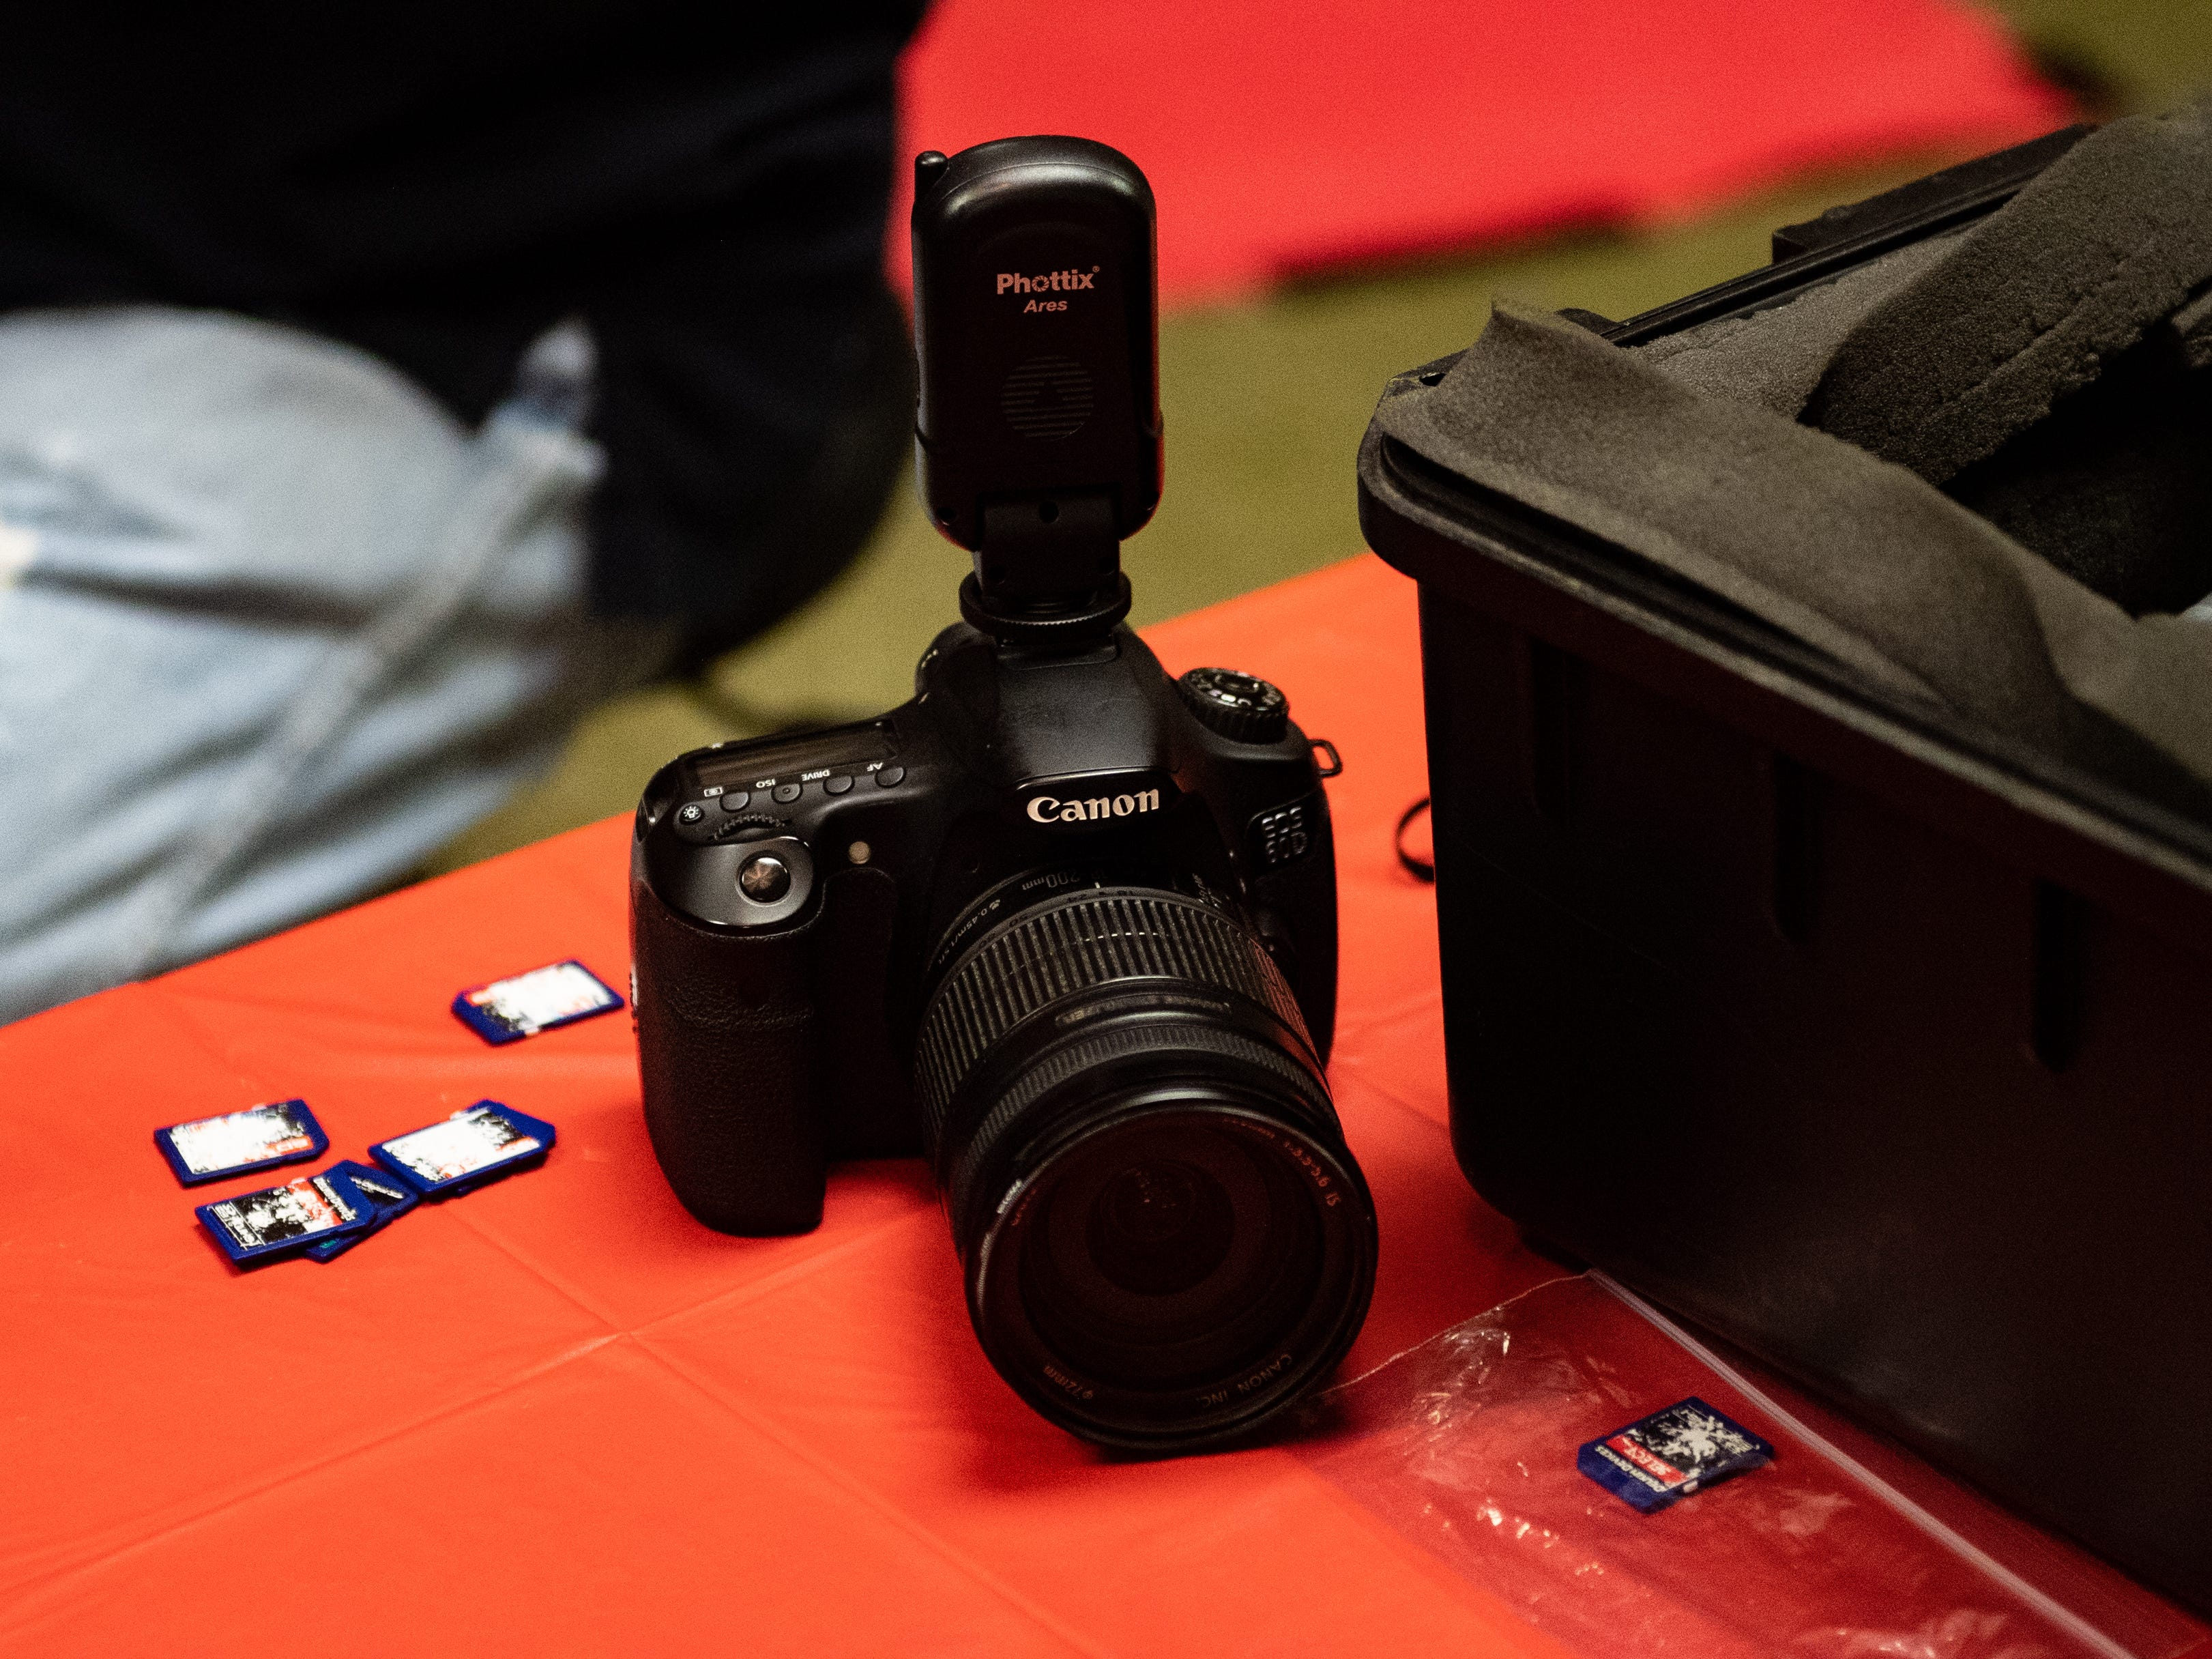 The photographers use multiple SD cards while taking photos to ensure pictures can be printed as fast as possible during the Annual Evening with Santa at the Lincoln Engine Company, December 13, 2018.